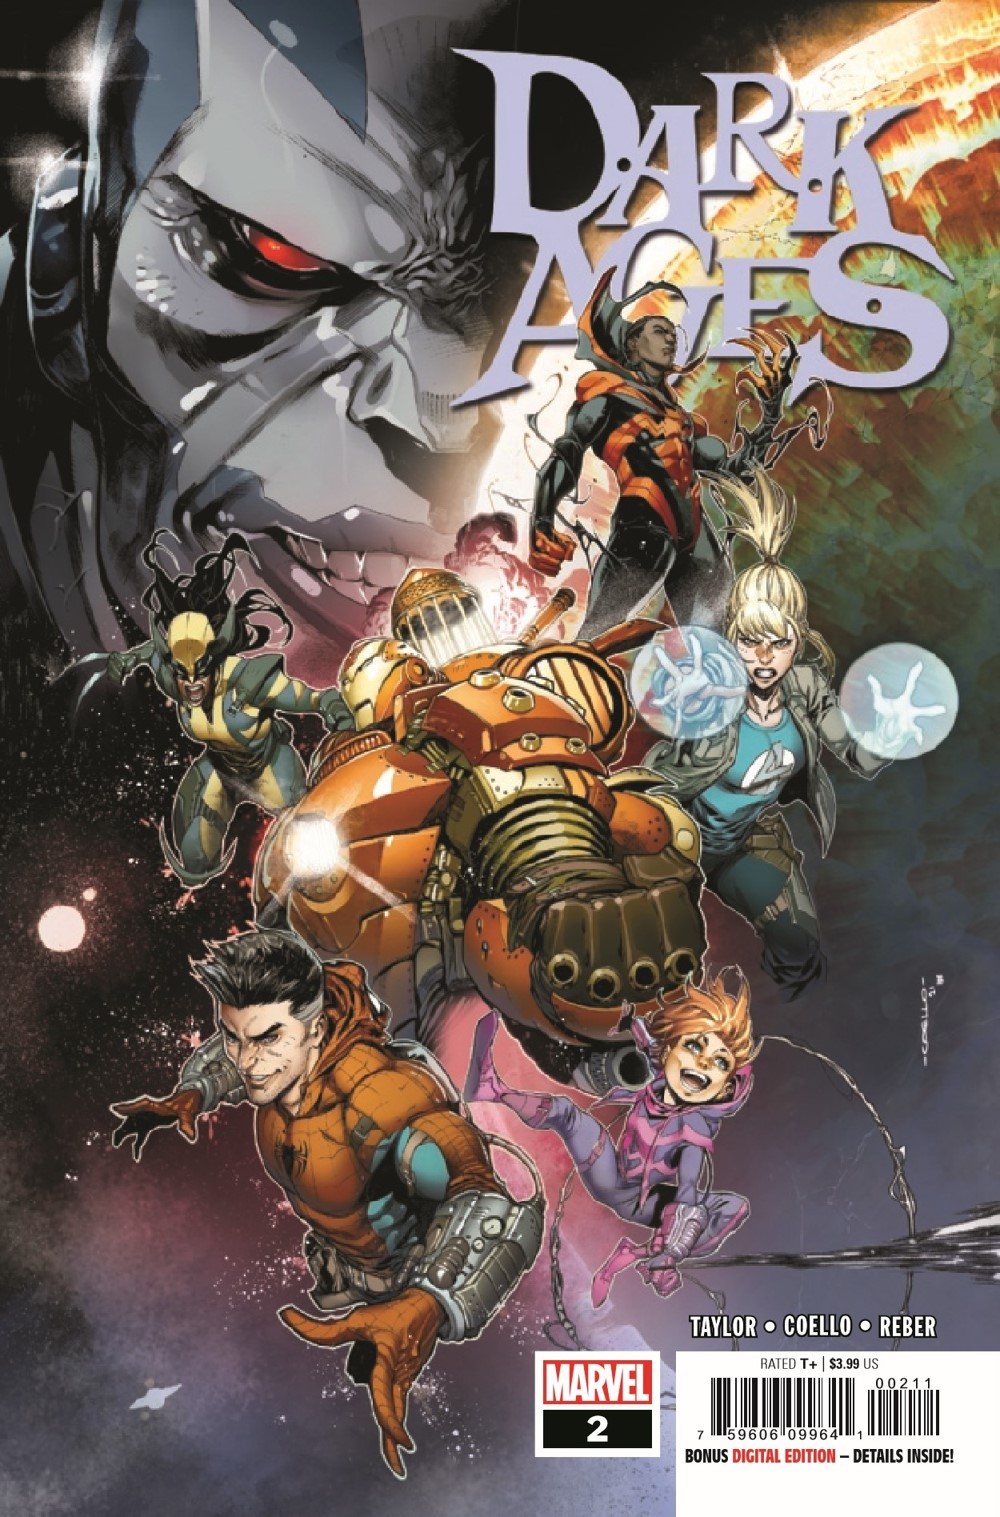 DARKAGES2021002_Preview-1 ComicList Previews: DARK AGES #2 (OF 6)